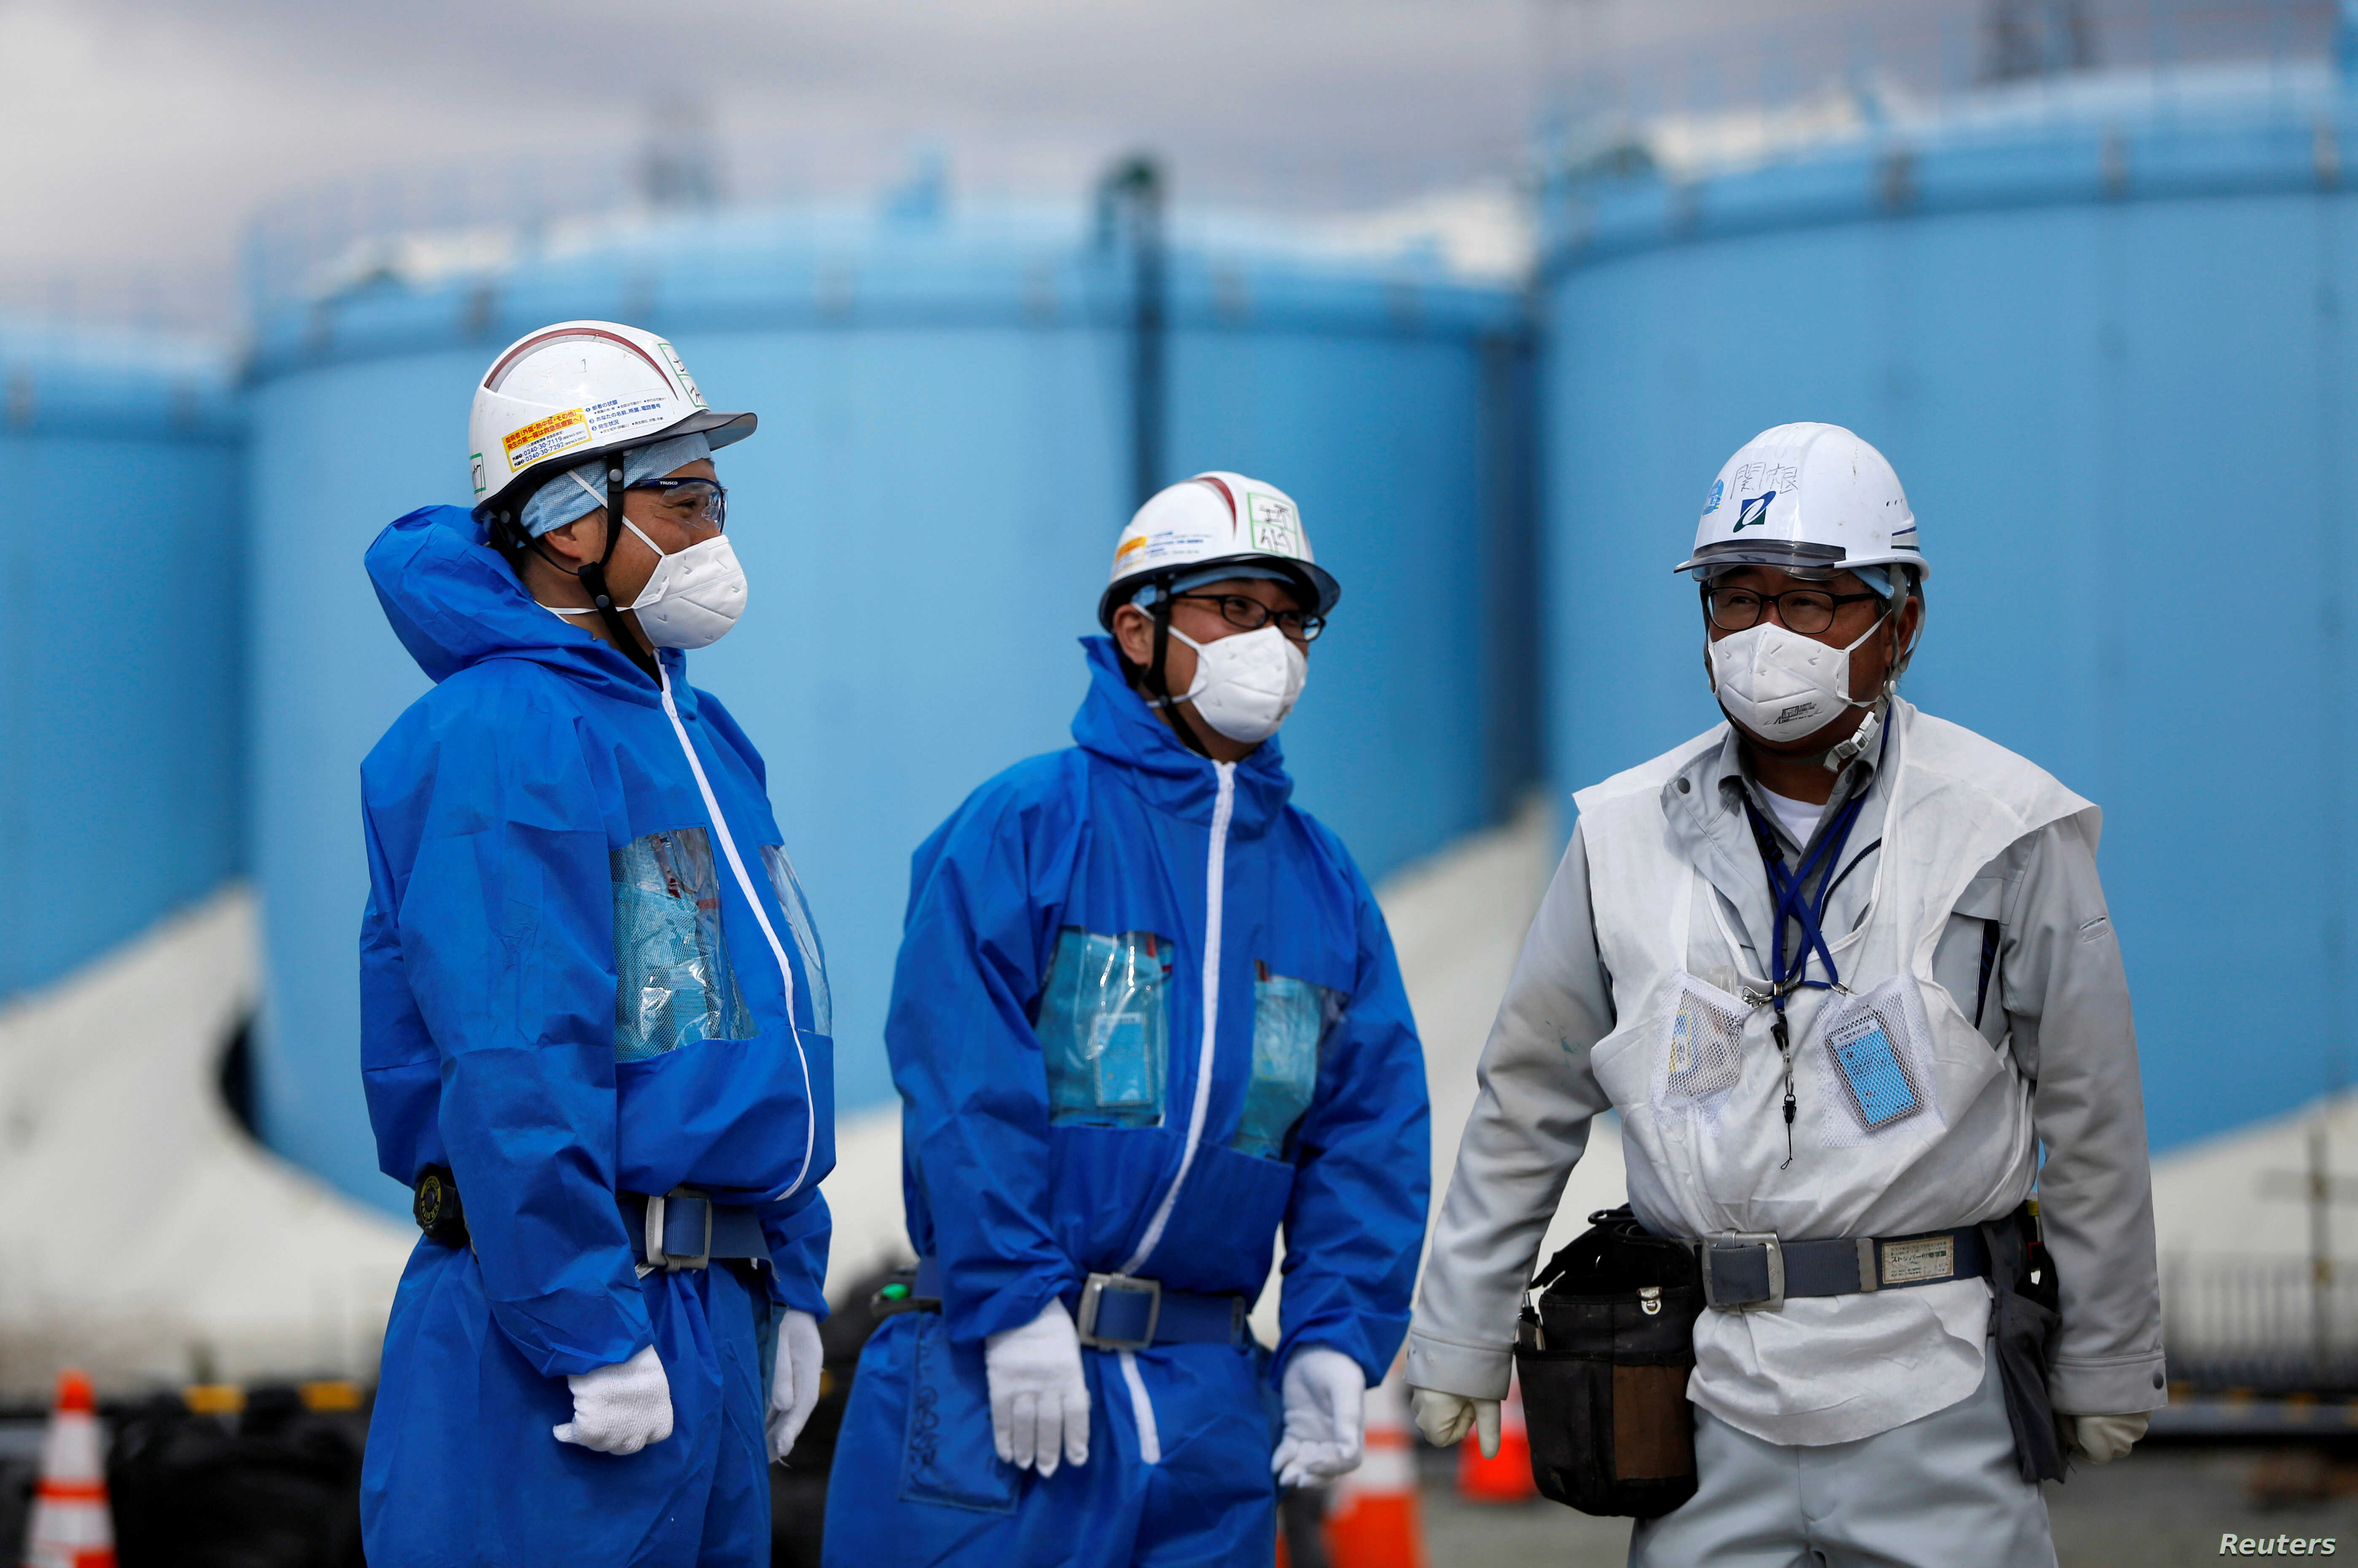 FILE- Workers are seen in front of storage tanks for radioactive water at Tokyo Electric Power Co's tsunami-crippled Fukushima Daiichi nuclear power plant in Okuma town Fukushima prefecture Japan Feb. 18 2019